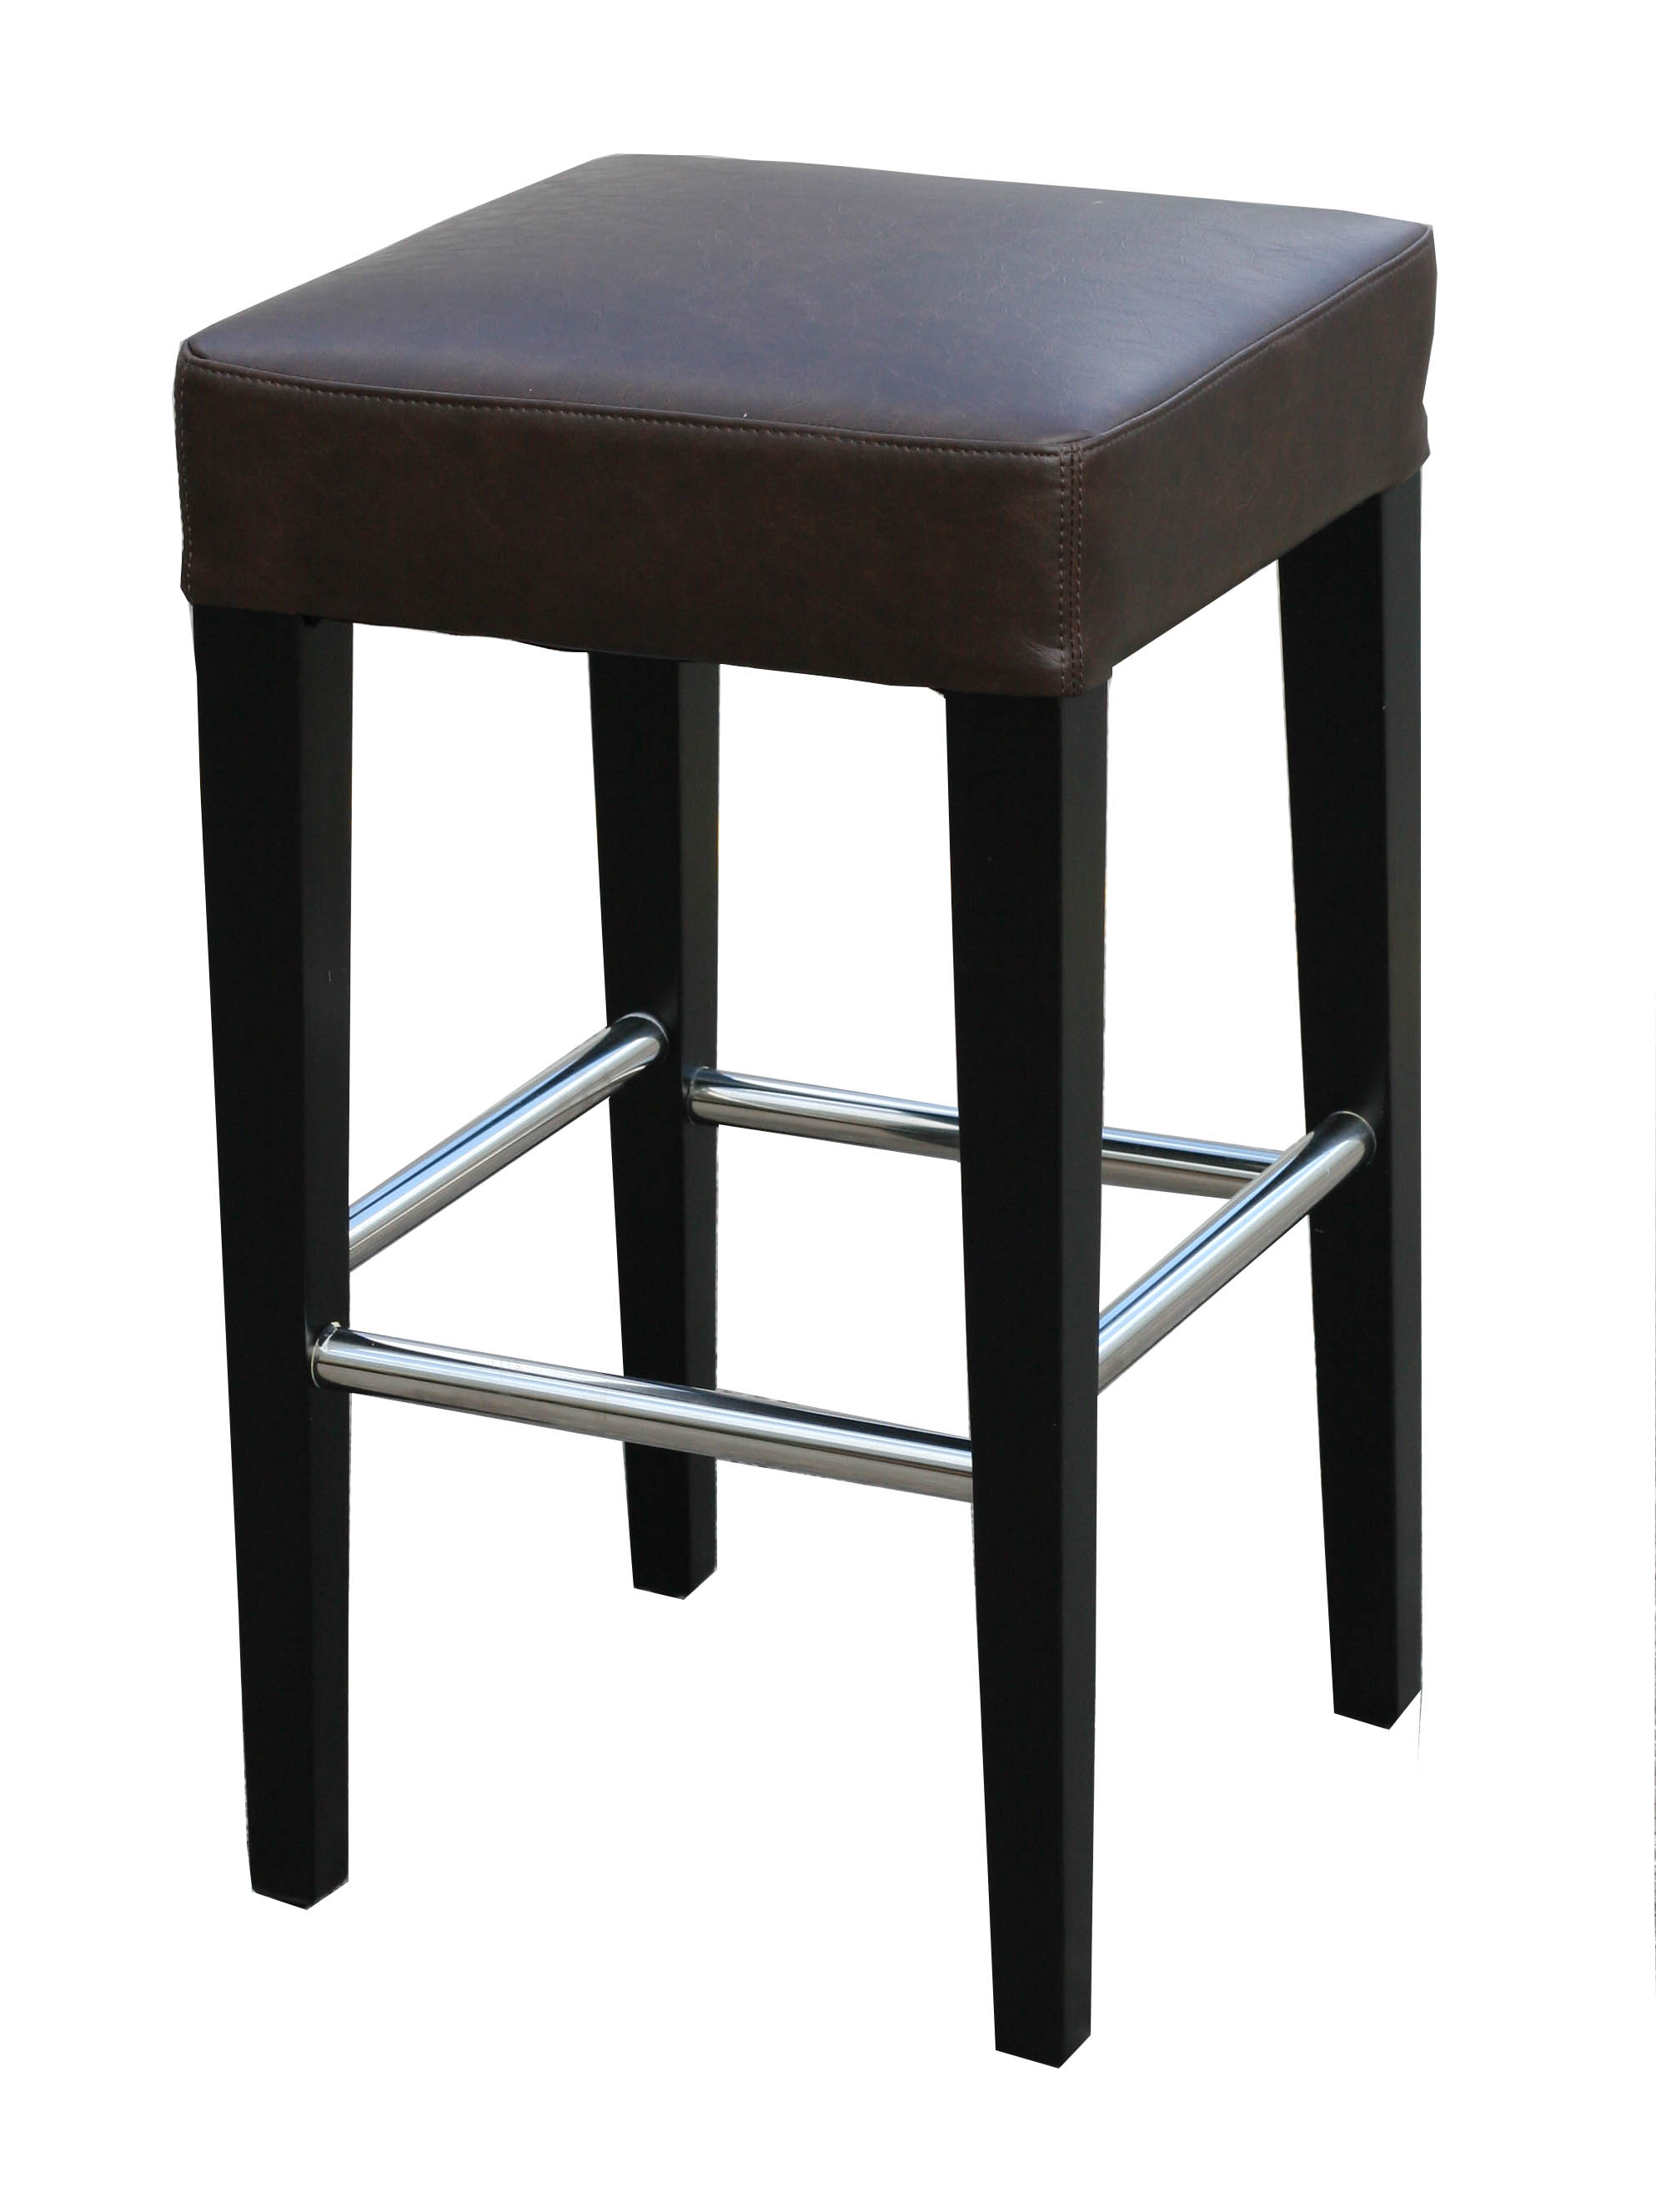 Bar Stools & Kitchen Counter Stools R 1810 Backless Leather